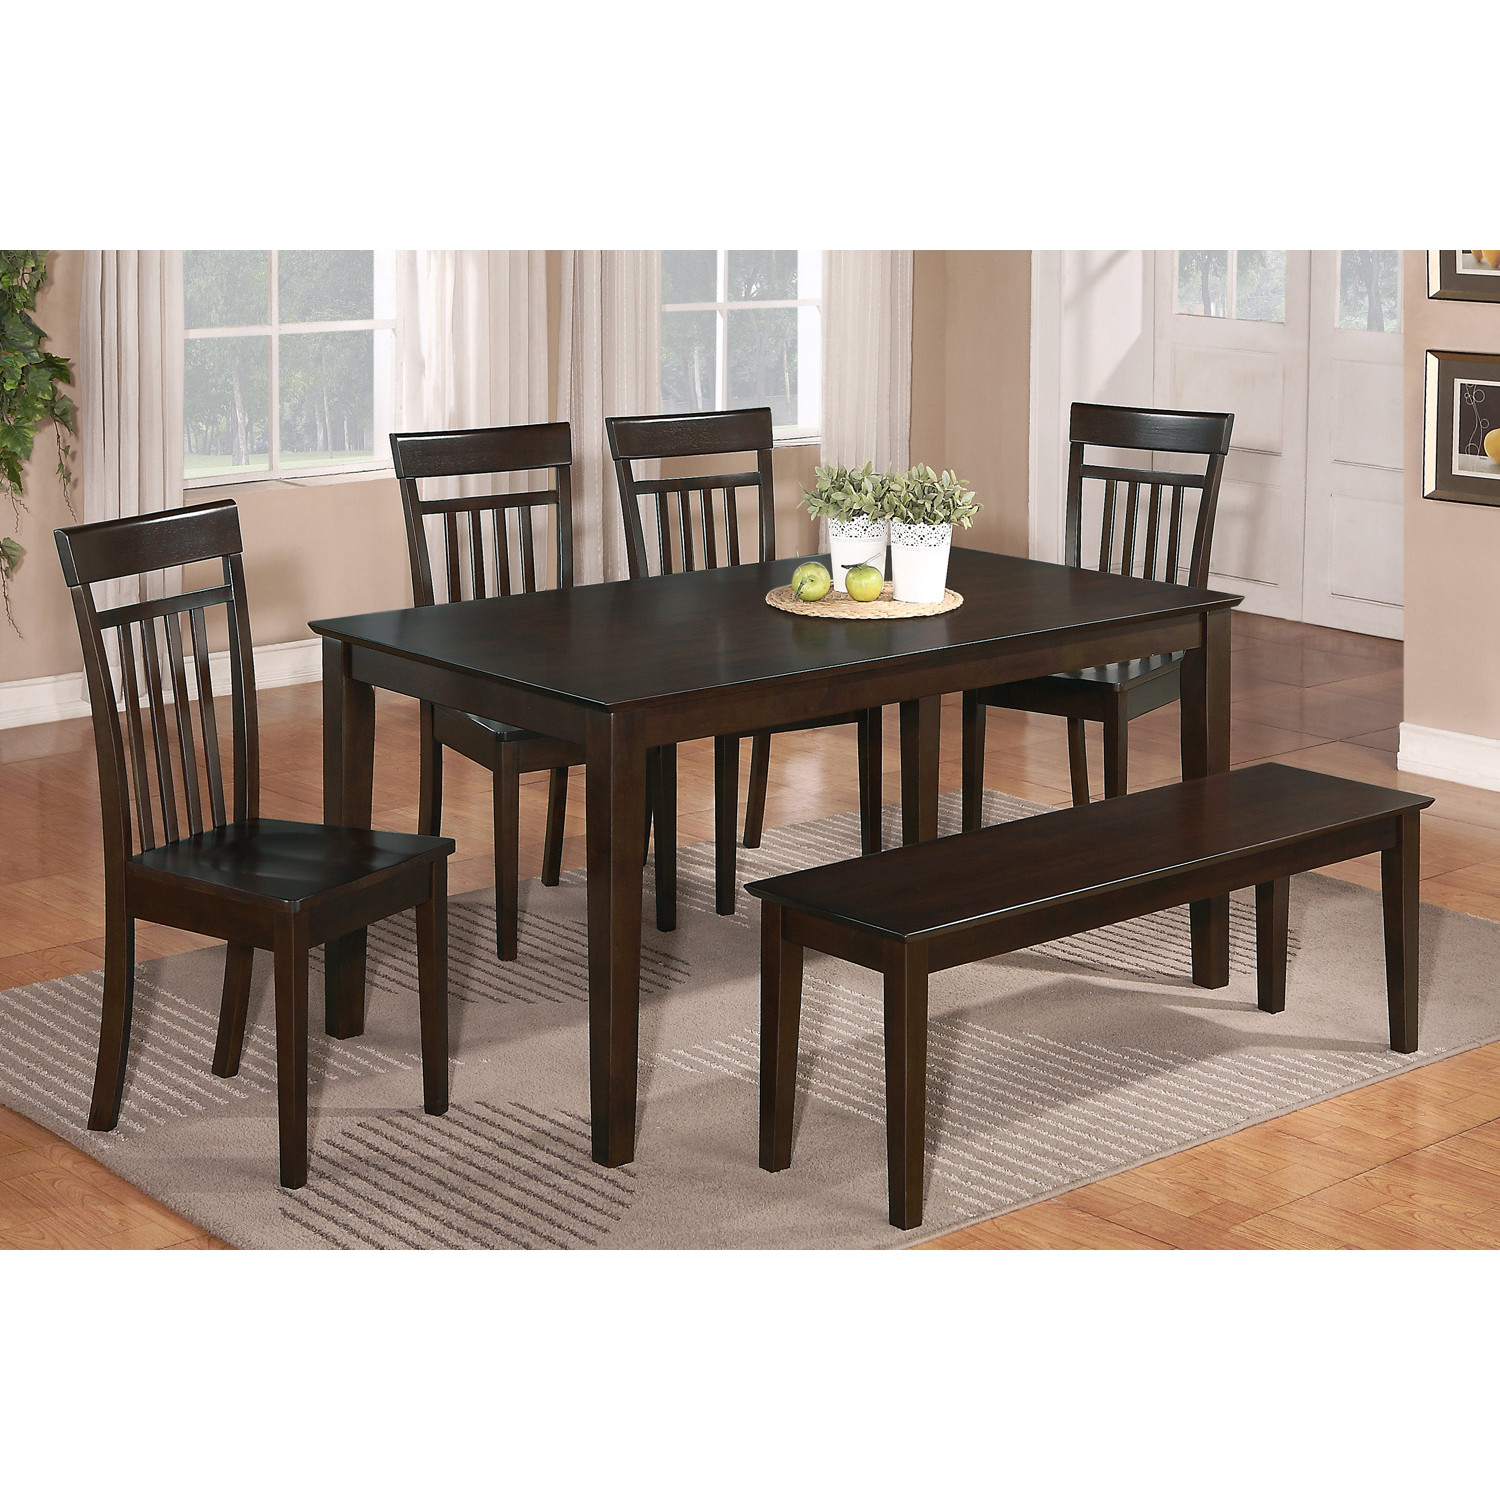 Dining Room Table Sets: Awesome Dinette Sets With Bench